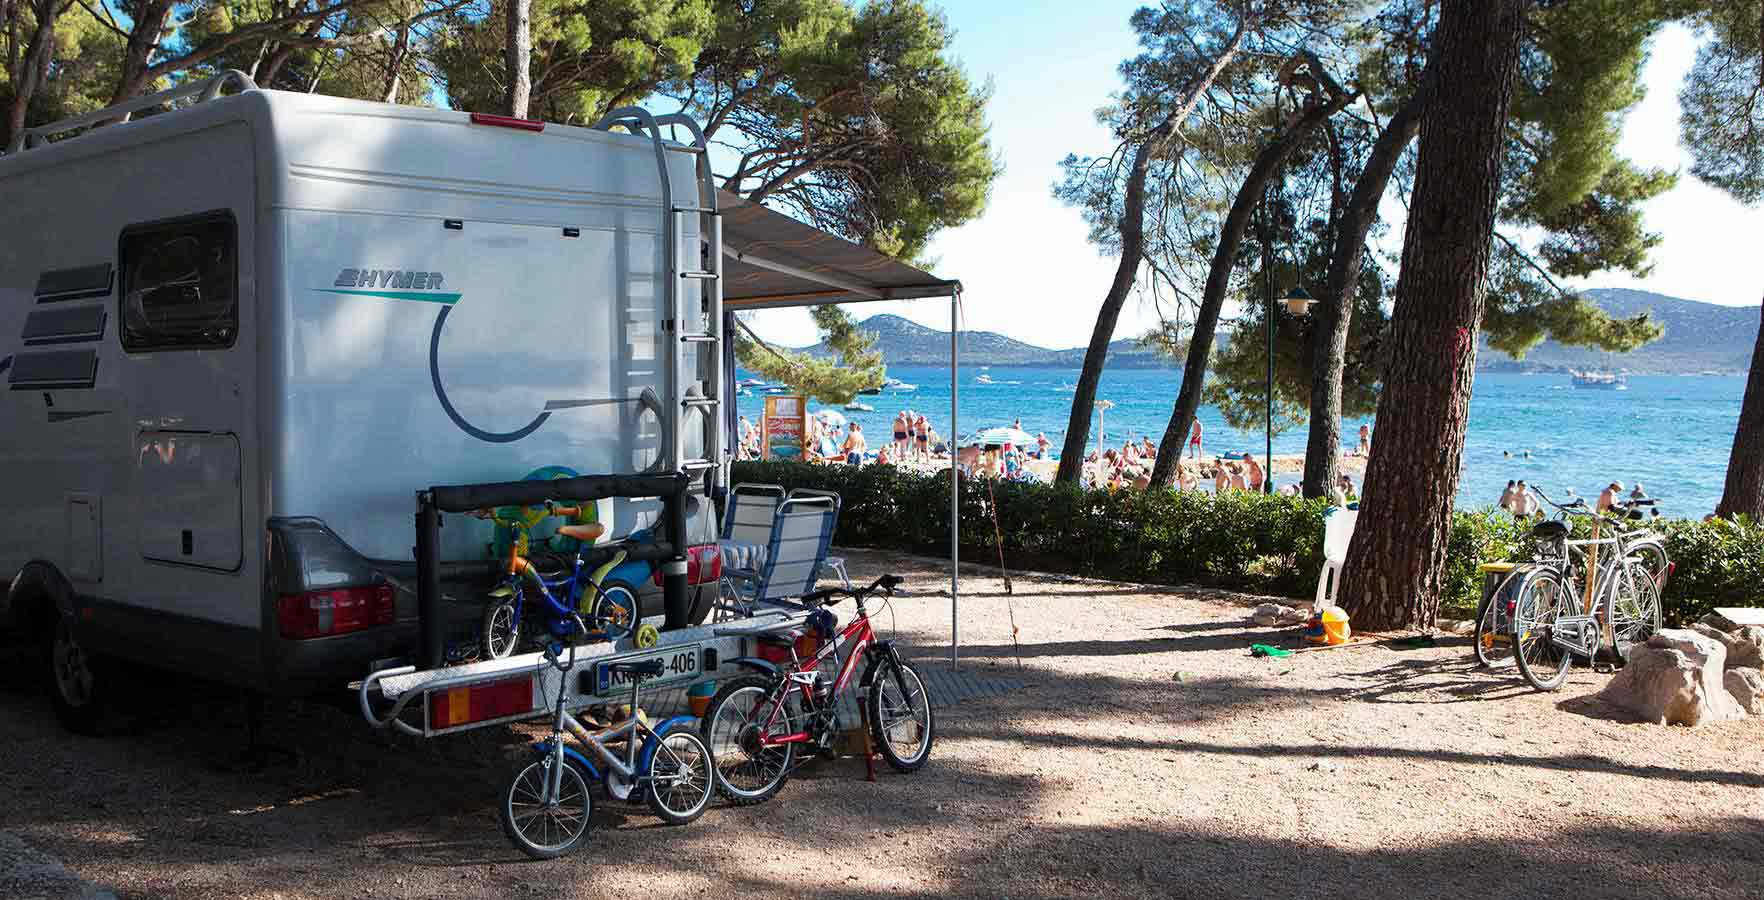 Campsite Park Soline - camping in the shade